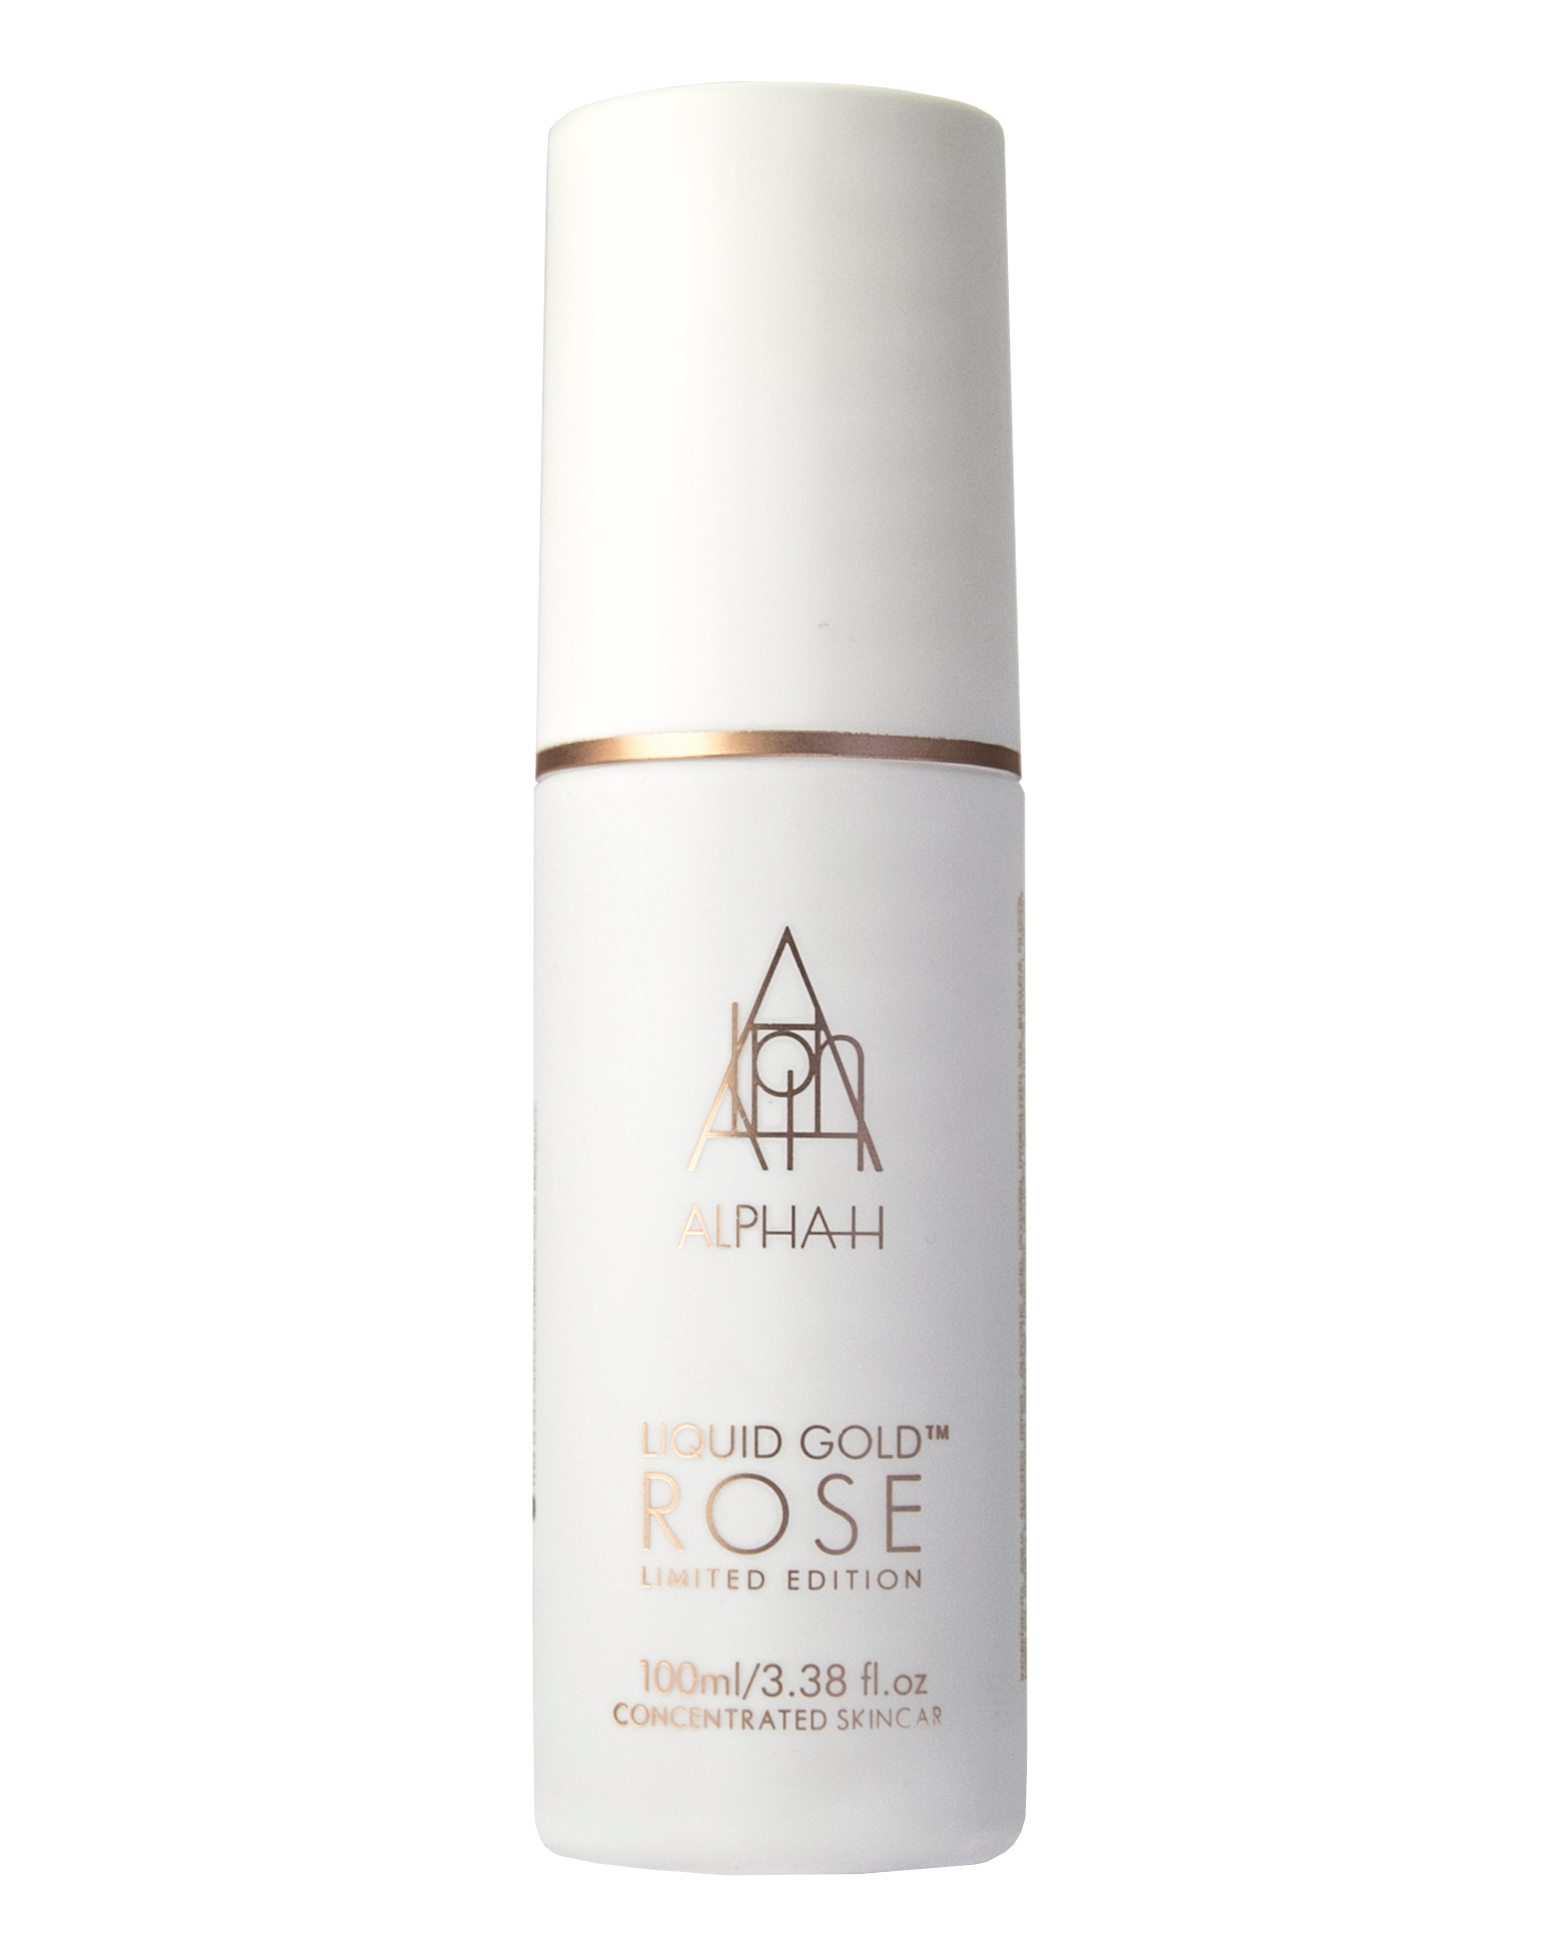 Alpha H Liquid Gold Rose